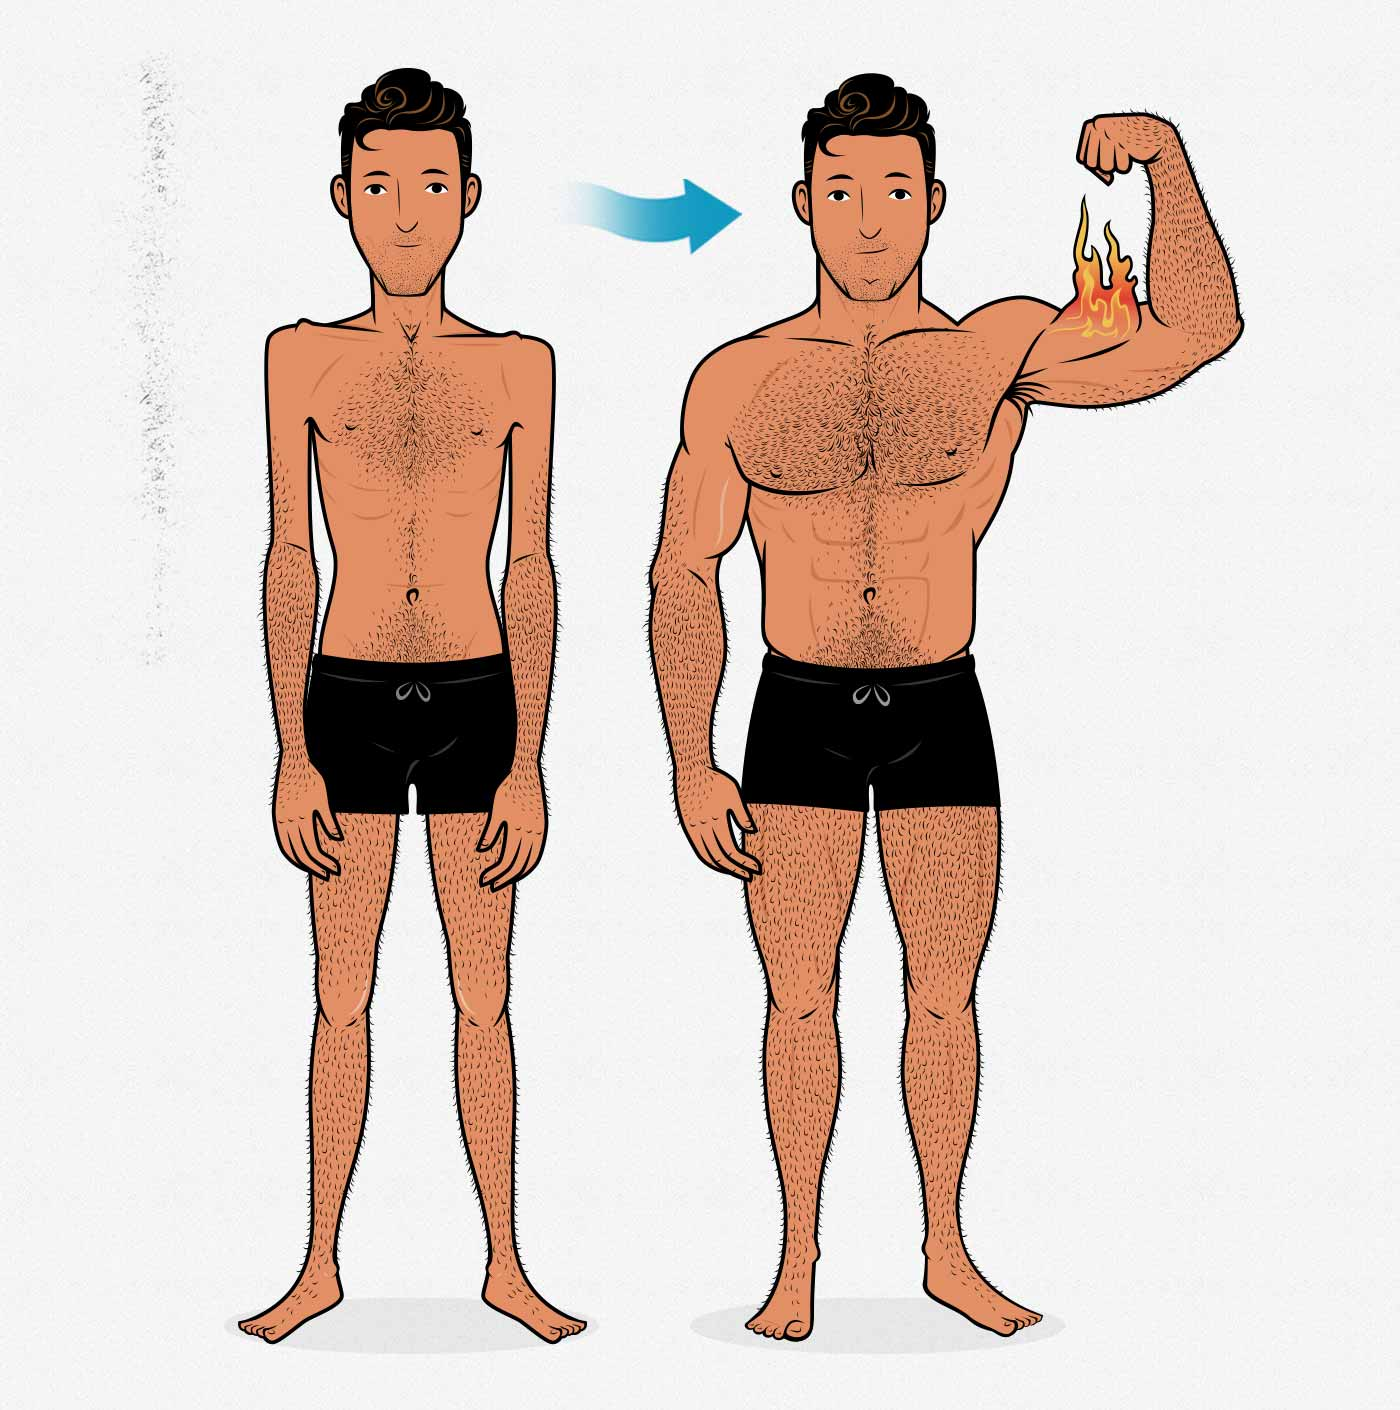 Illustration of a skinny ectomorph building muscle and becoming muscular.